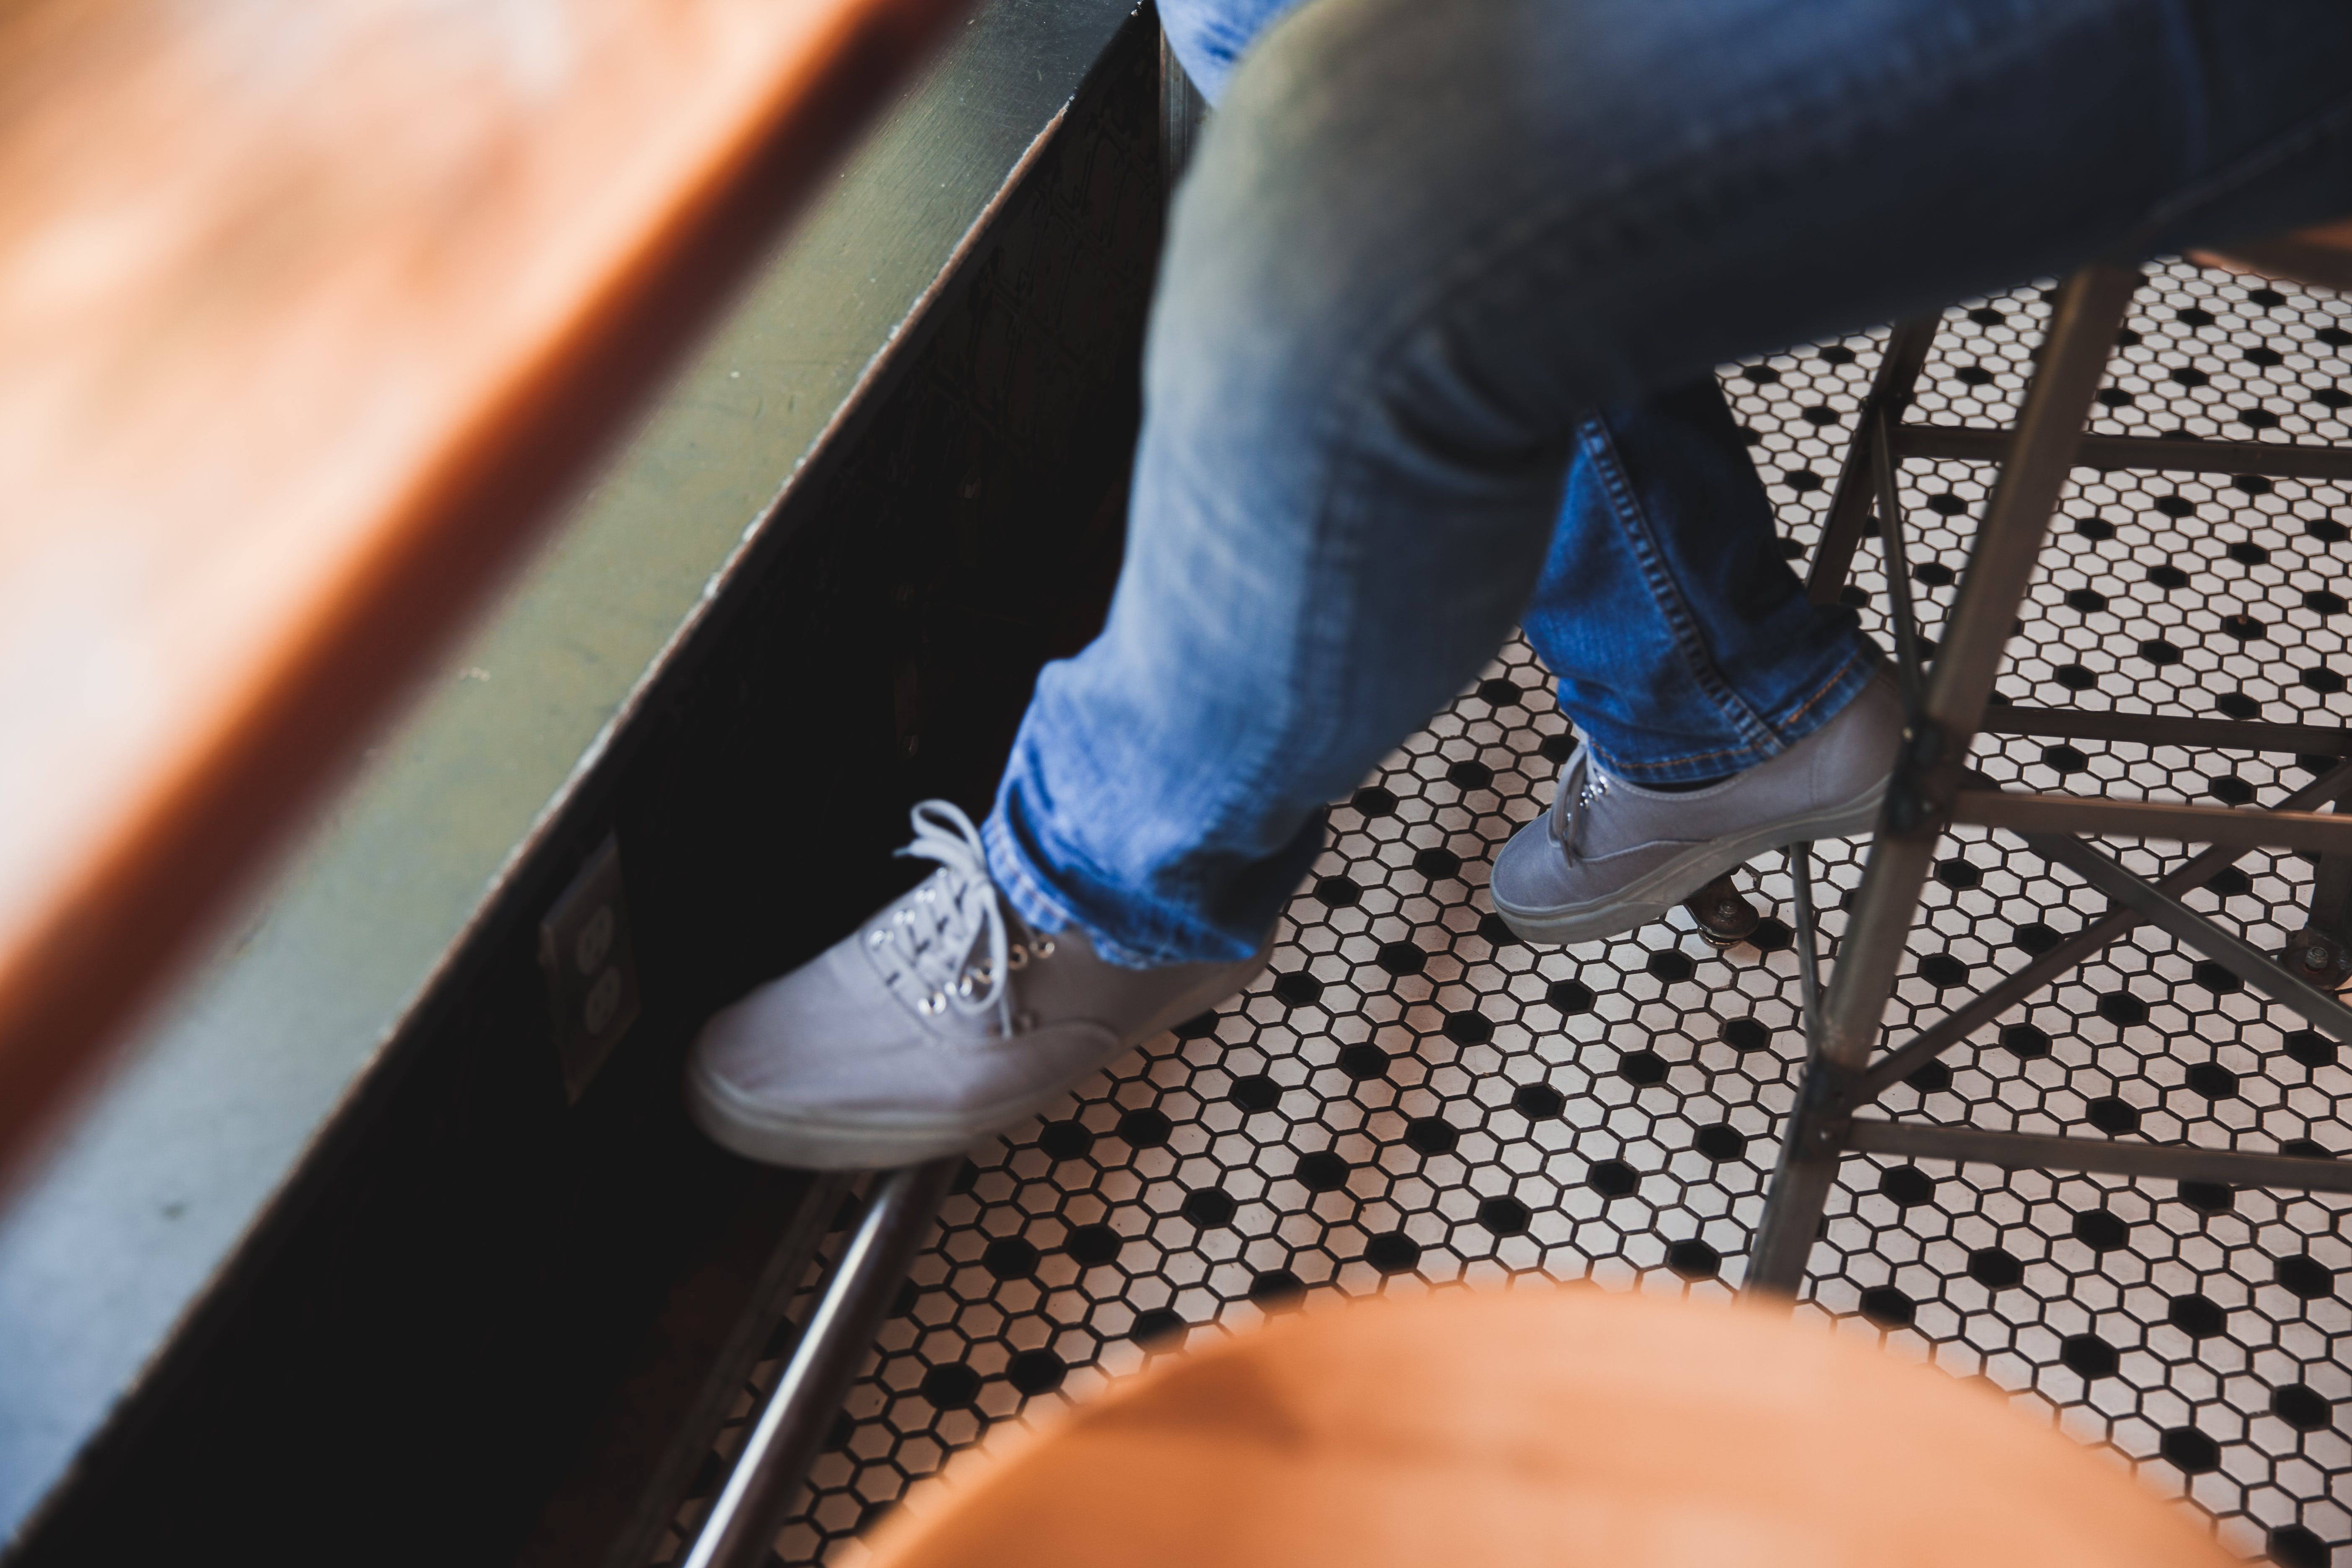 Free stock photo of coffee shop, foot rest, shoes, sitting